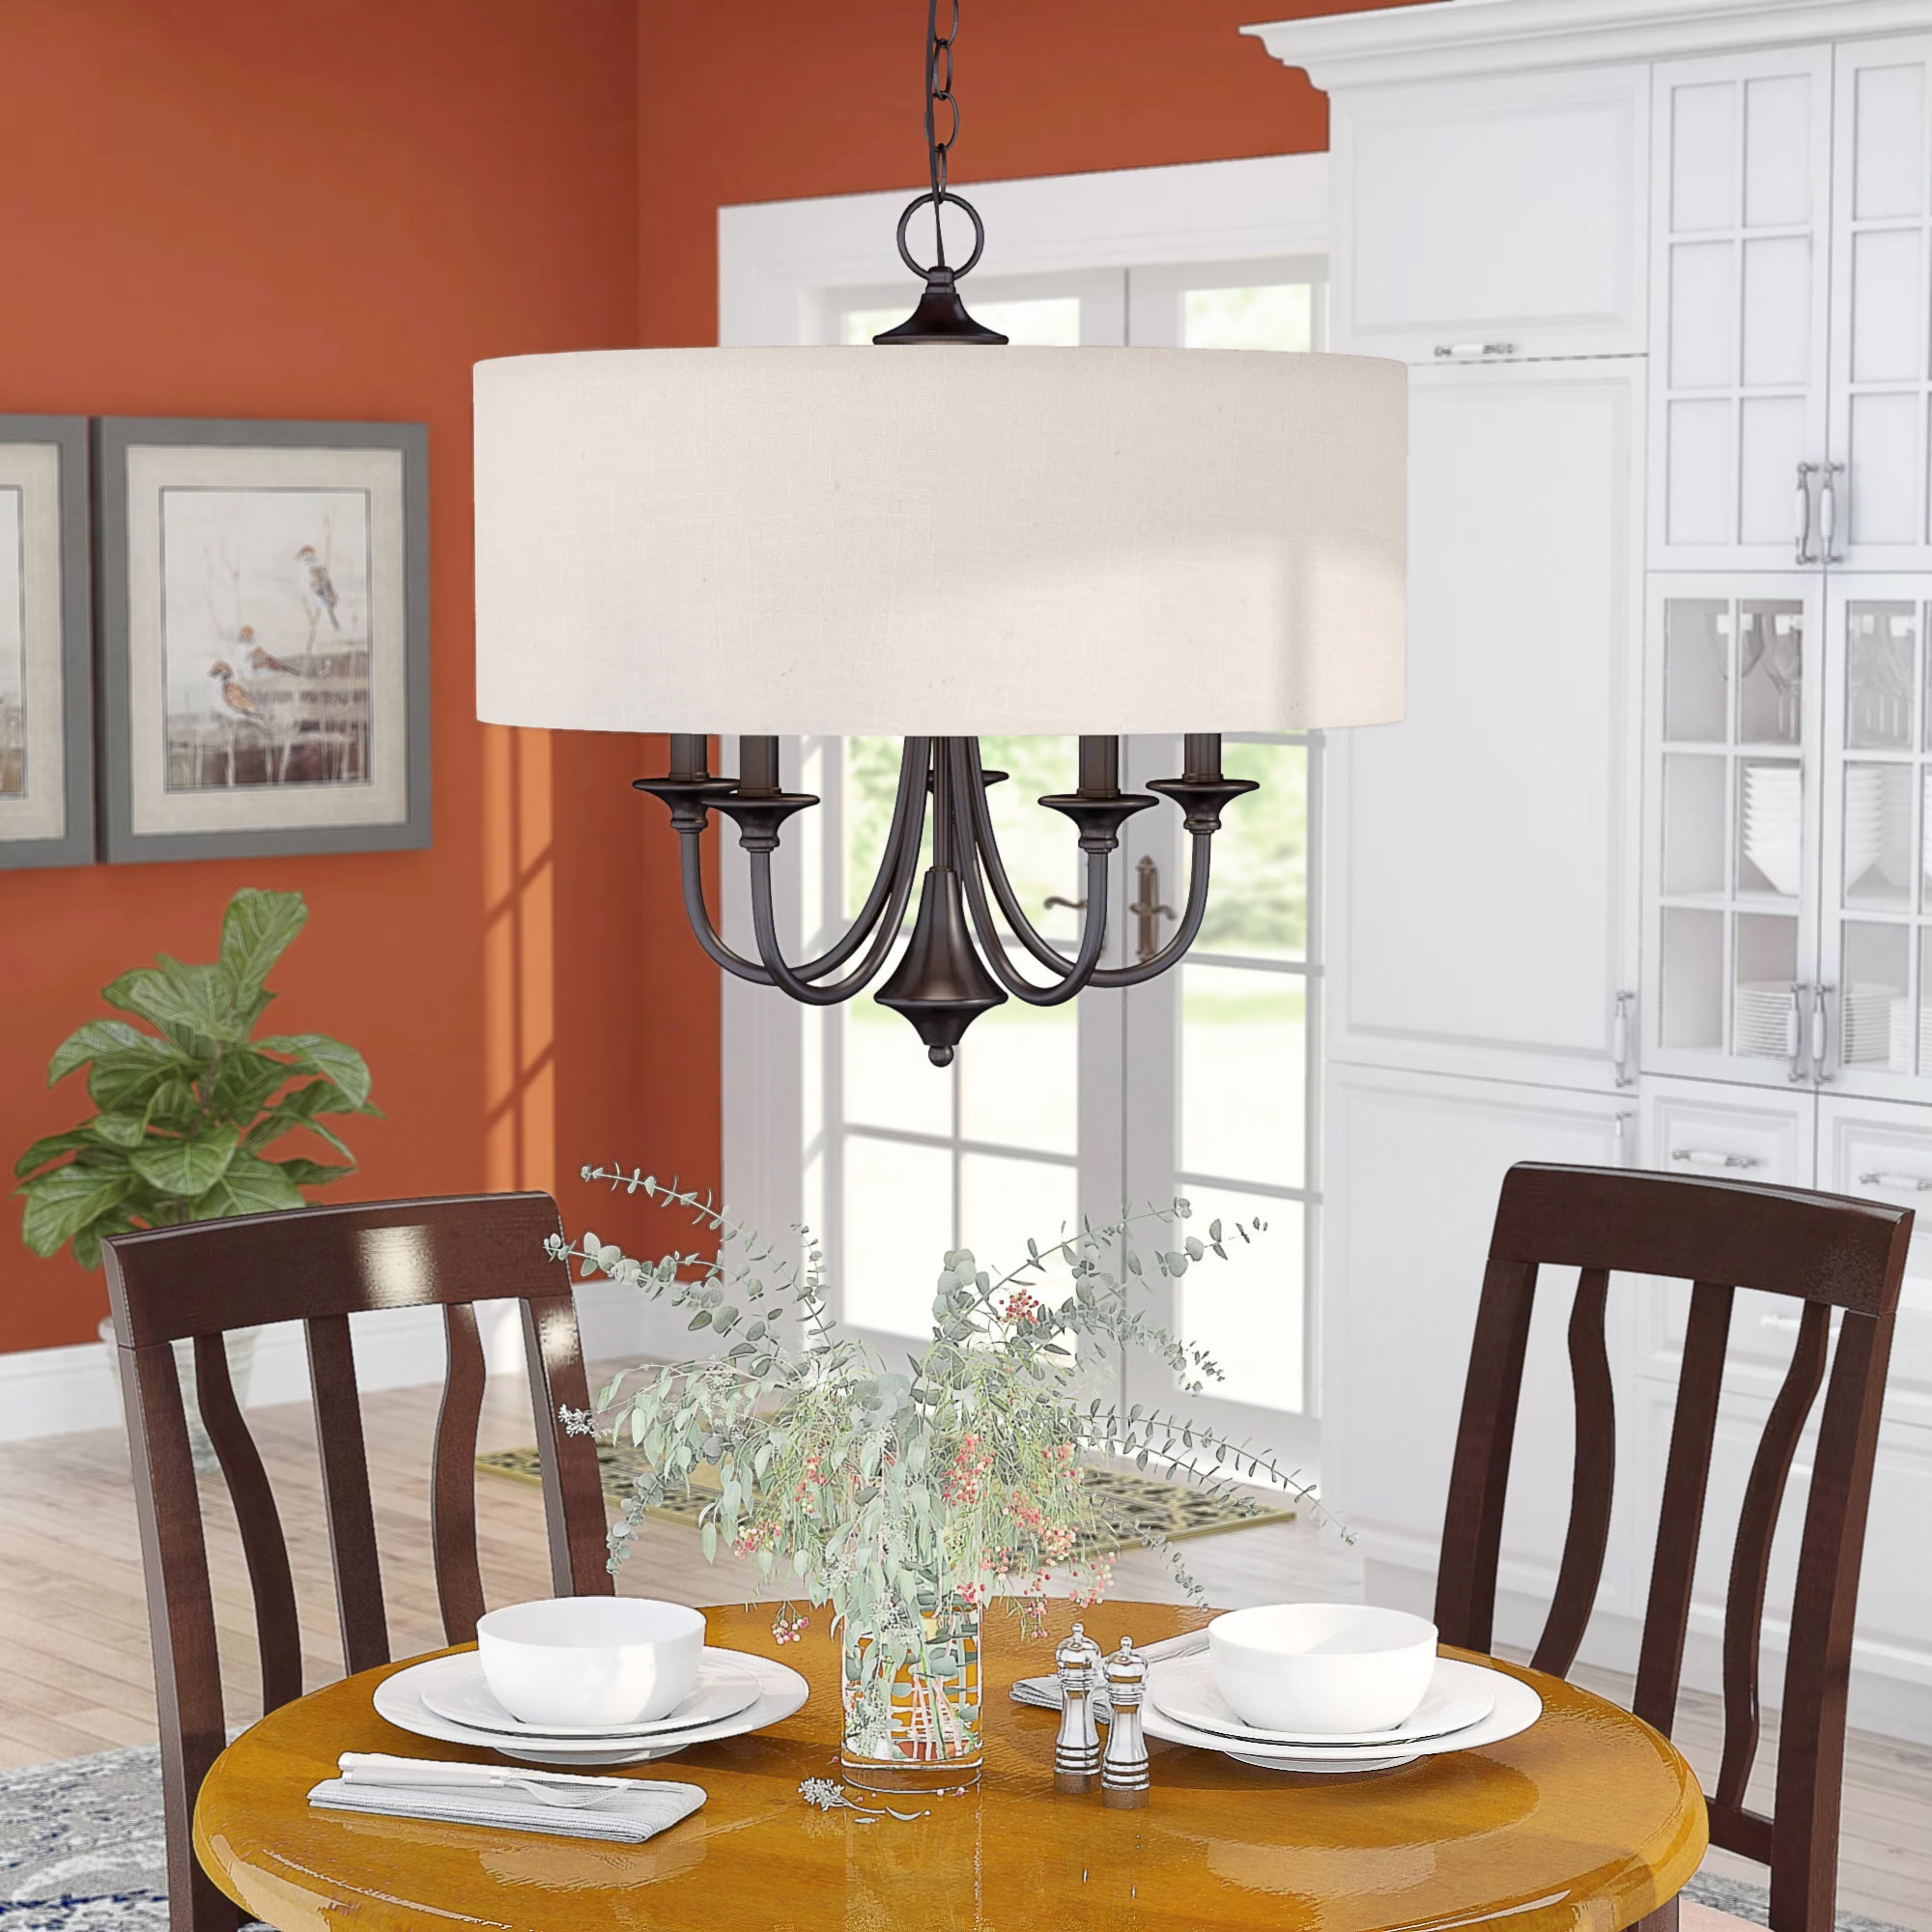 2020 Wadlington 5 Light Drum Chandelier Intended For Wadlington 6 Light Single Cylinder Pendants (Gallery 5 of 20)